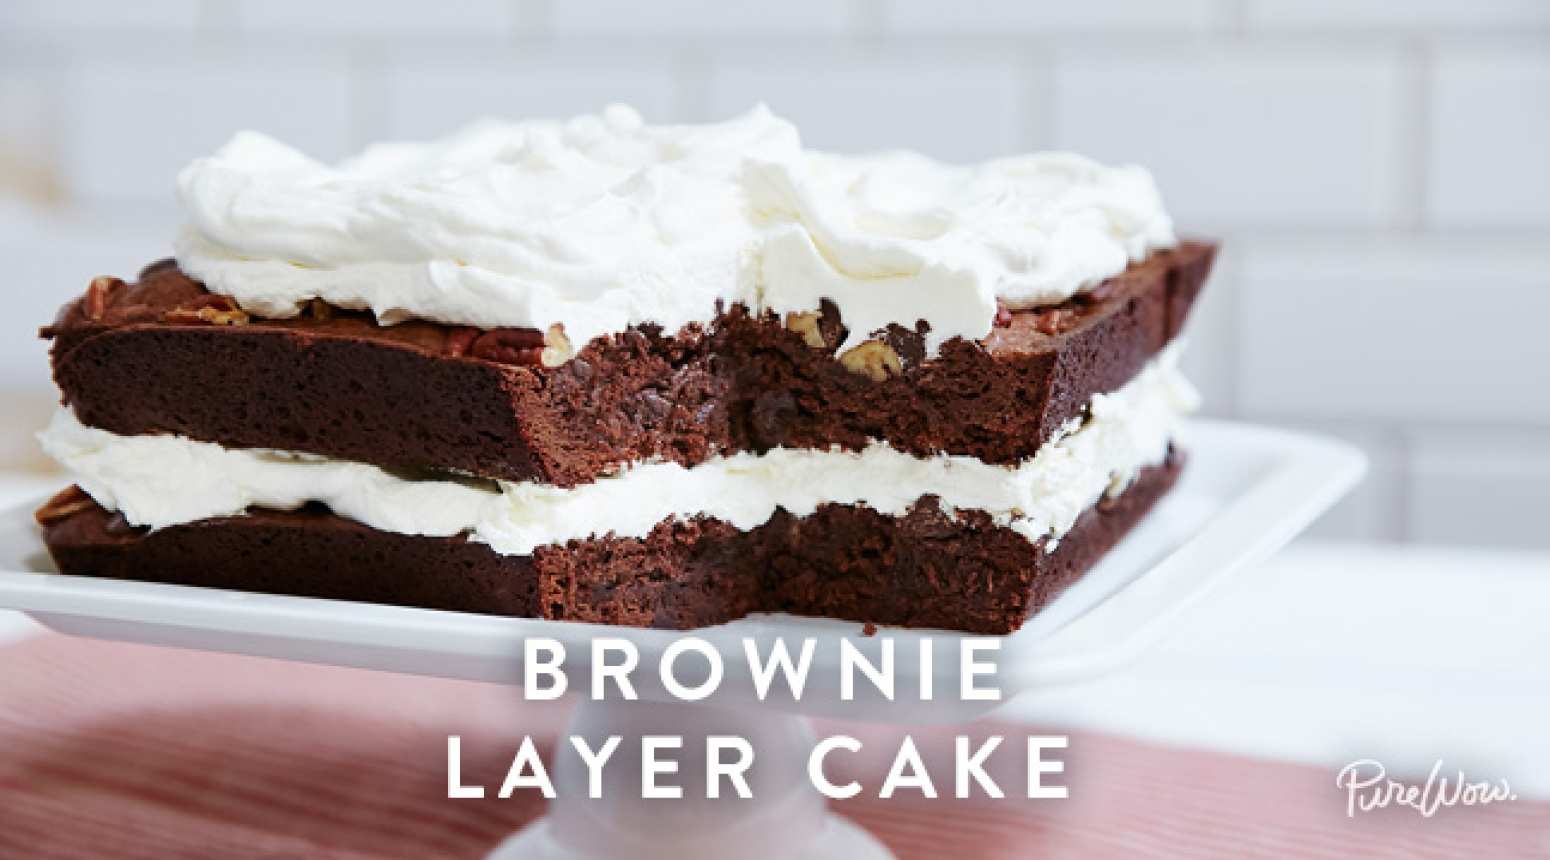 Brown Sugar Layer Cake